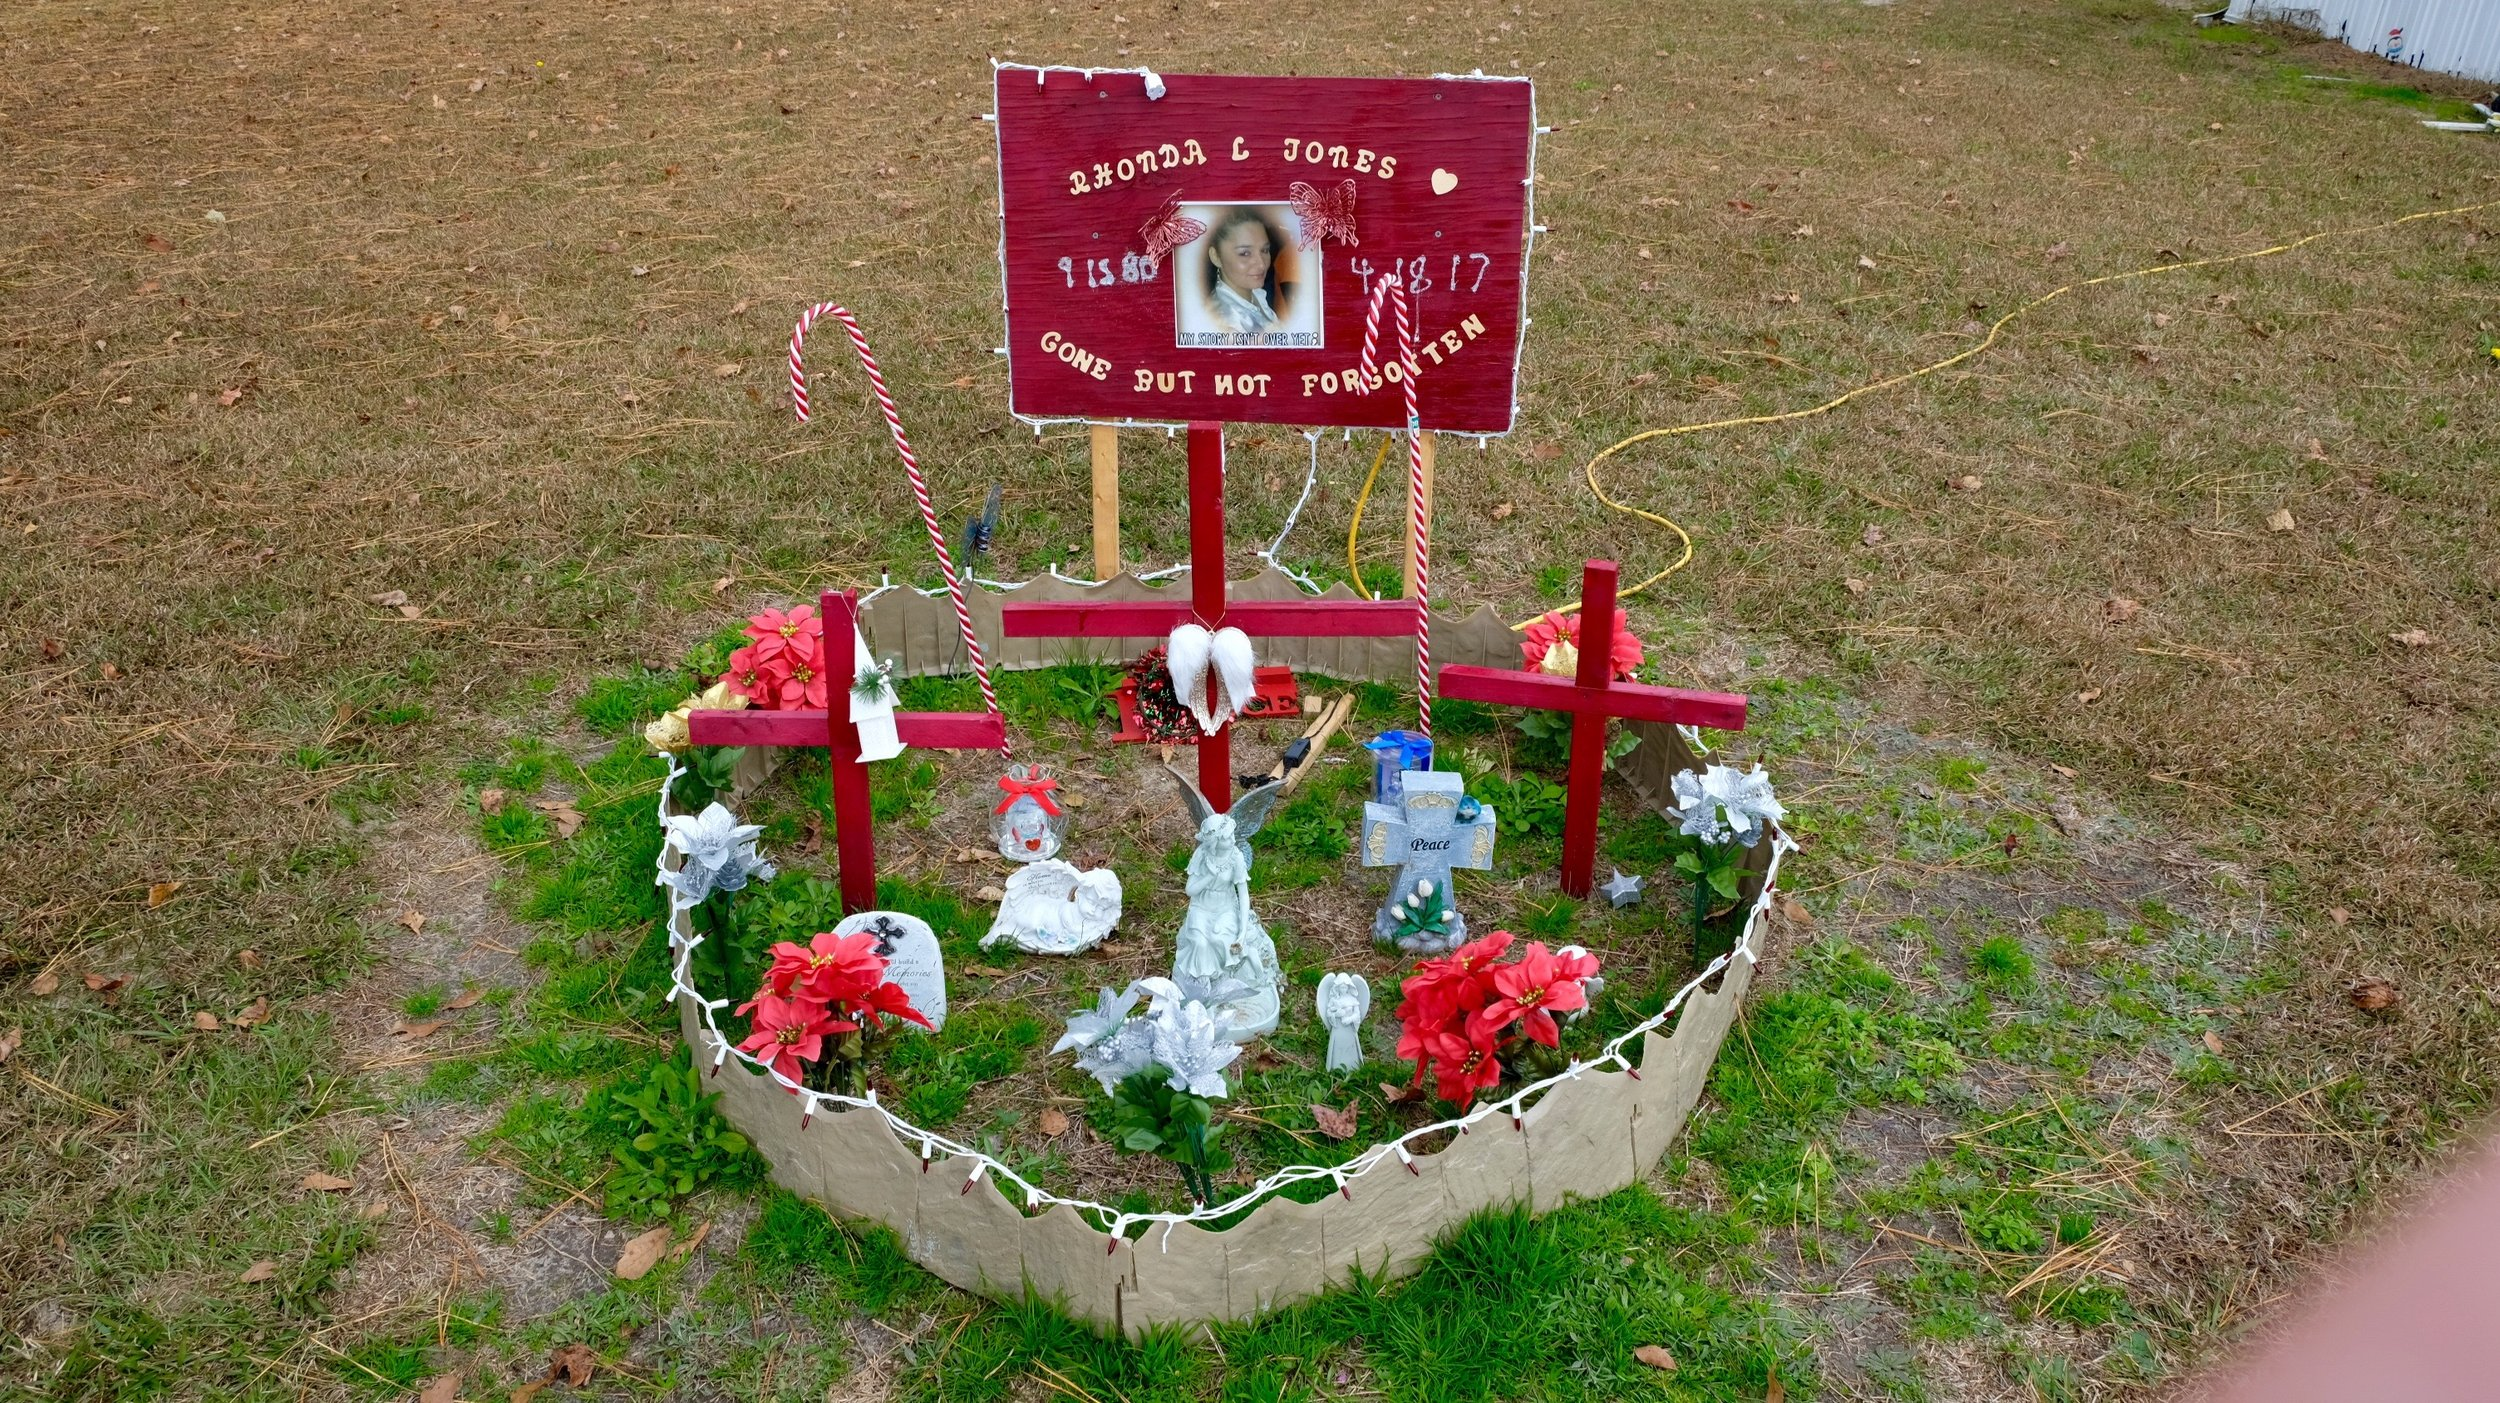 A memorial for Rhonda Jones in her mother's yard. (Photo by Russ Bowen)